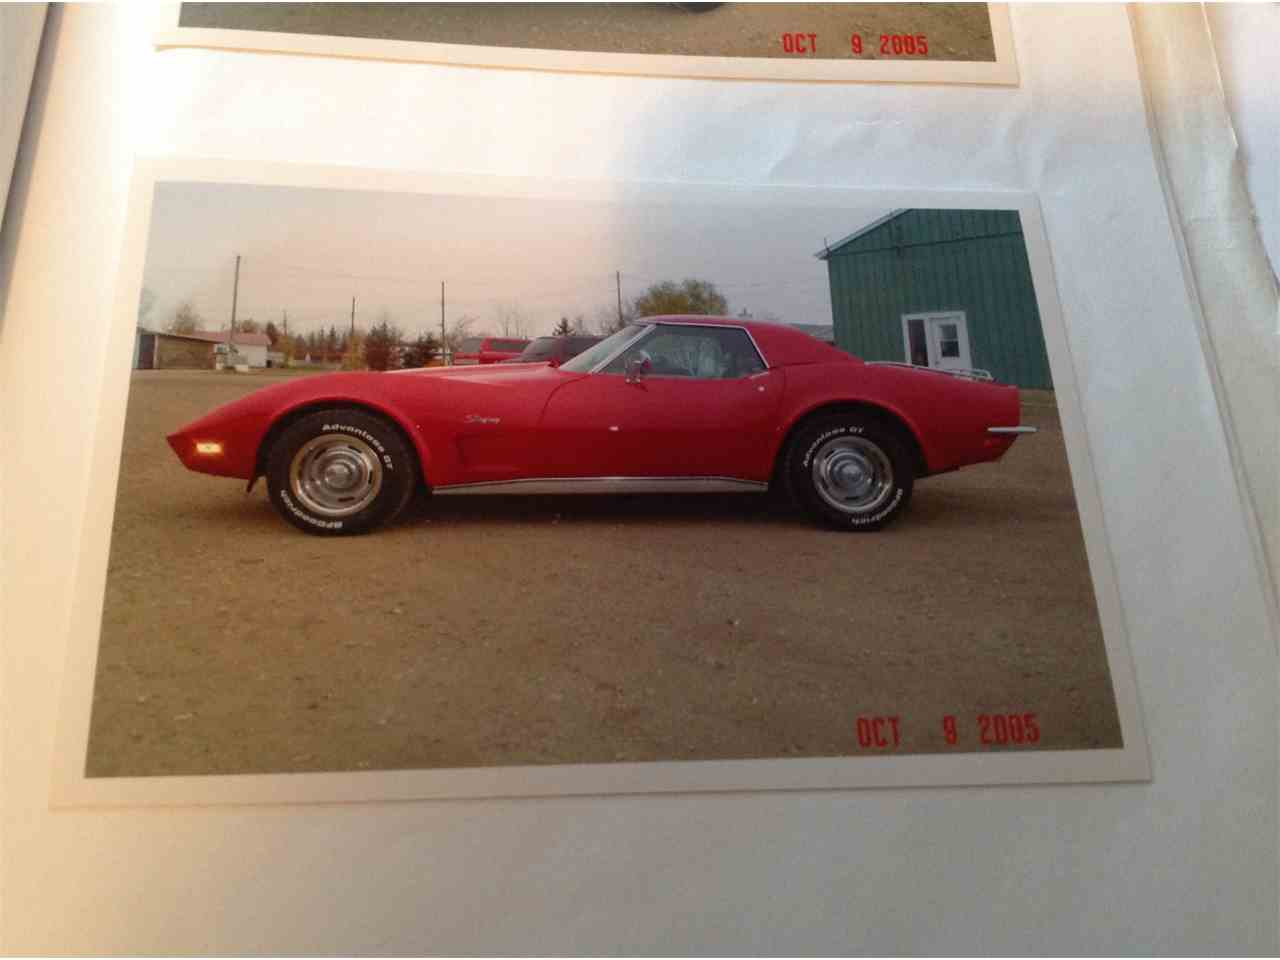 Large Picture of '73 Chev Corvette - $24,000.00 Offered by a Private Seller - HP0D